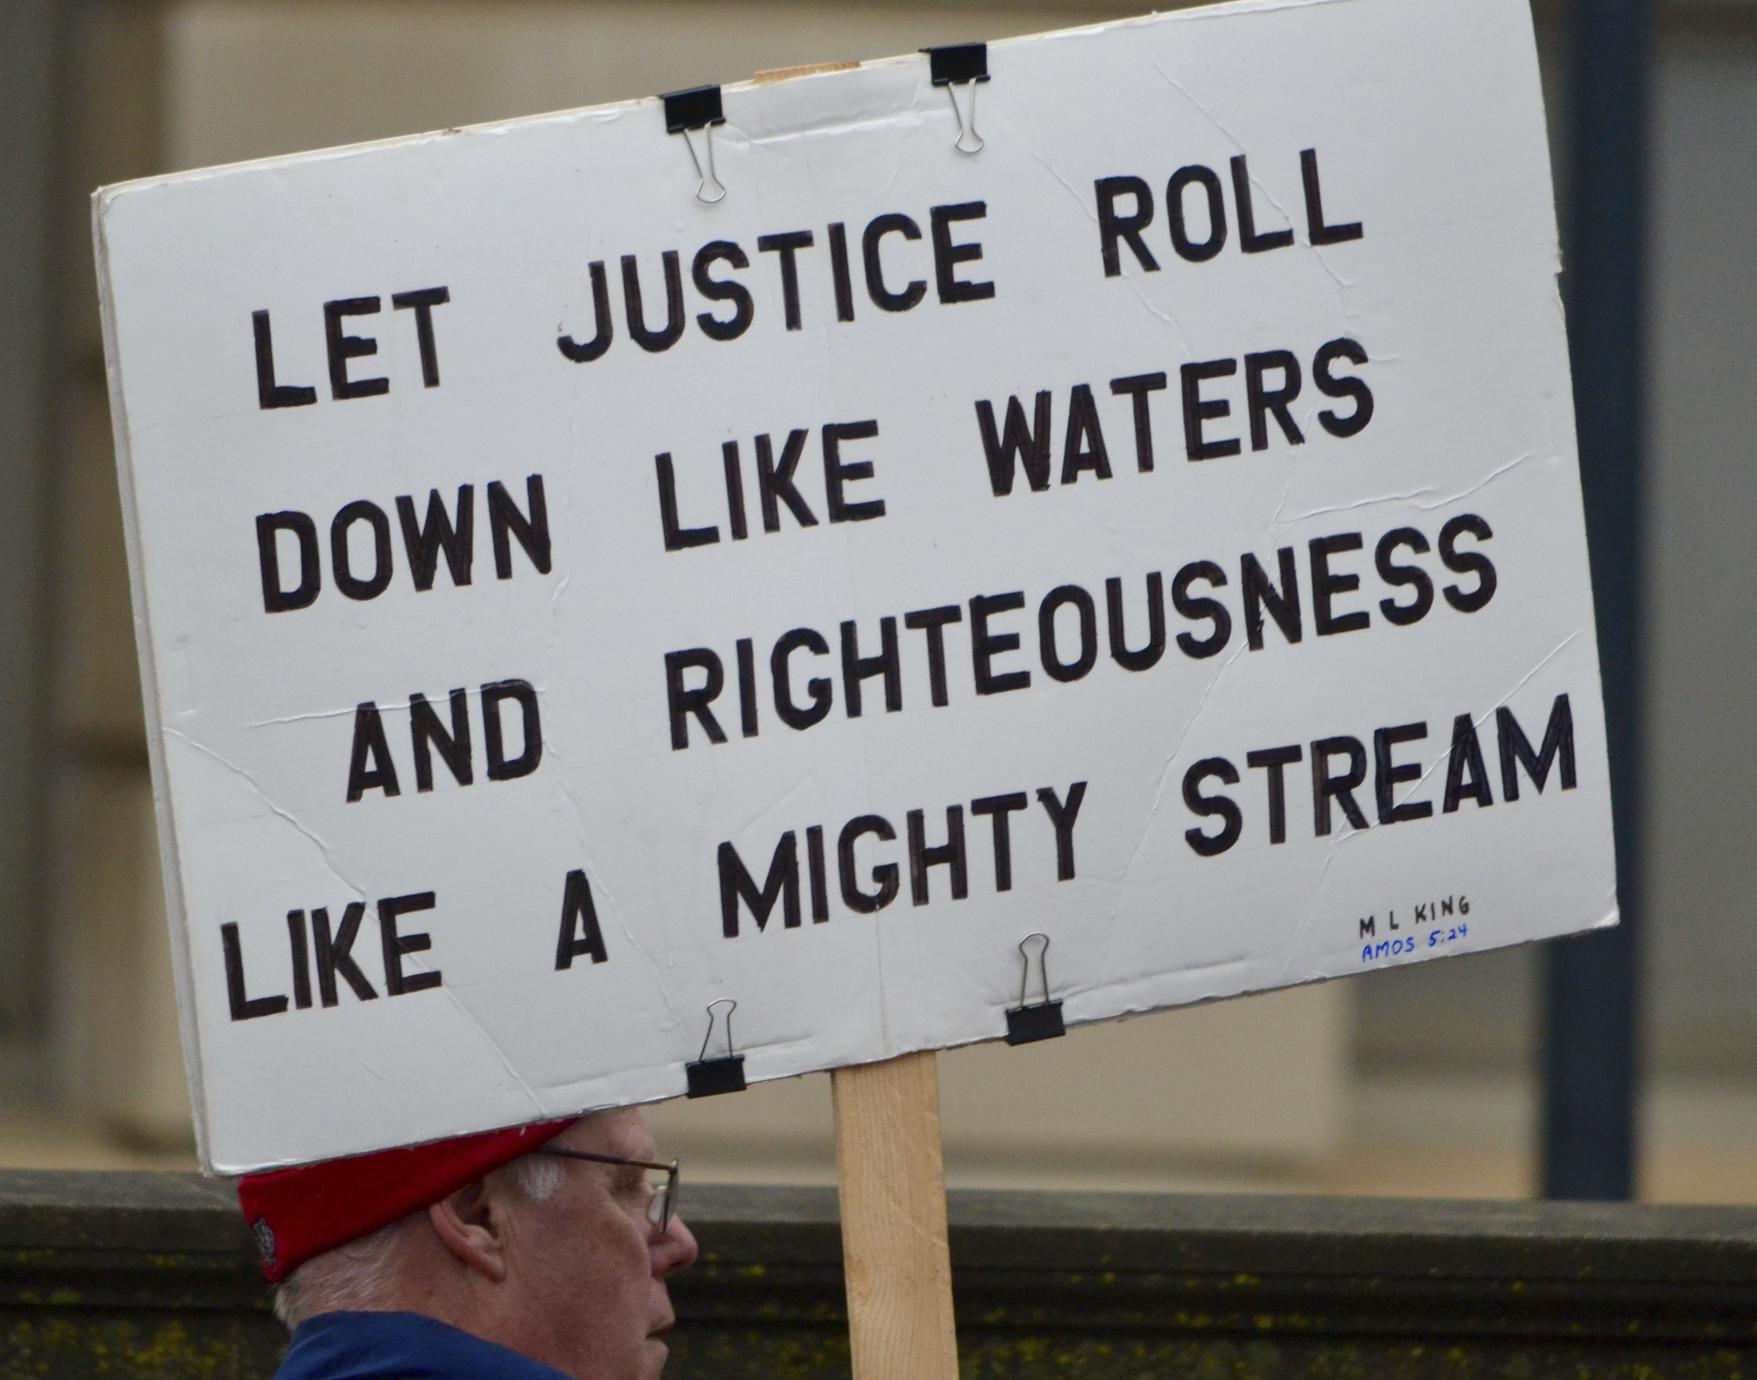 Let Justice Roll Down Like Waters and Righteousness Like a Mighty Stream